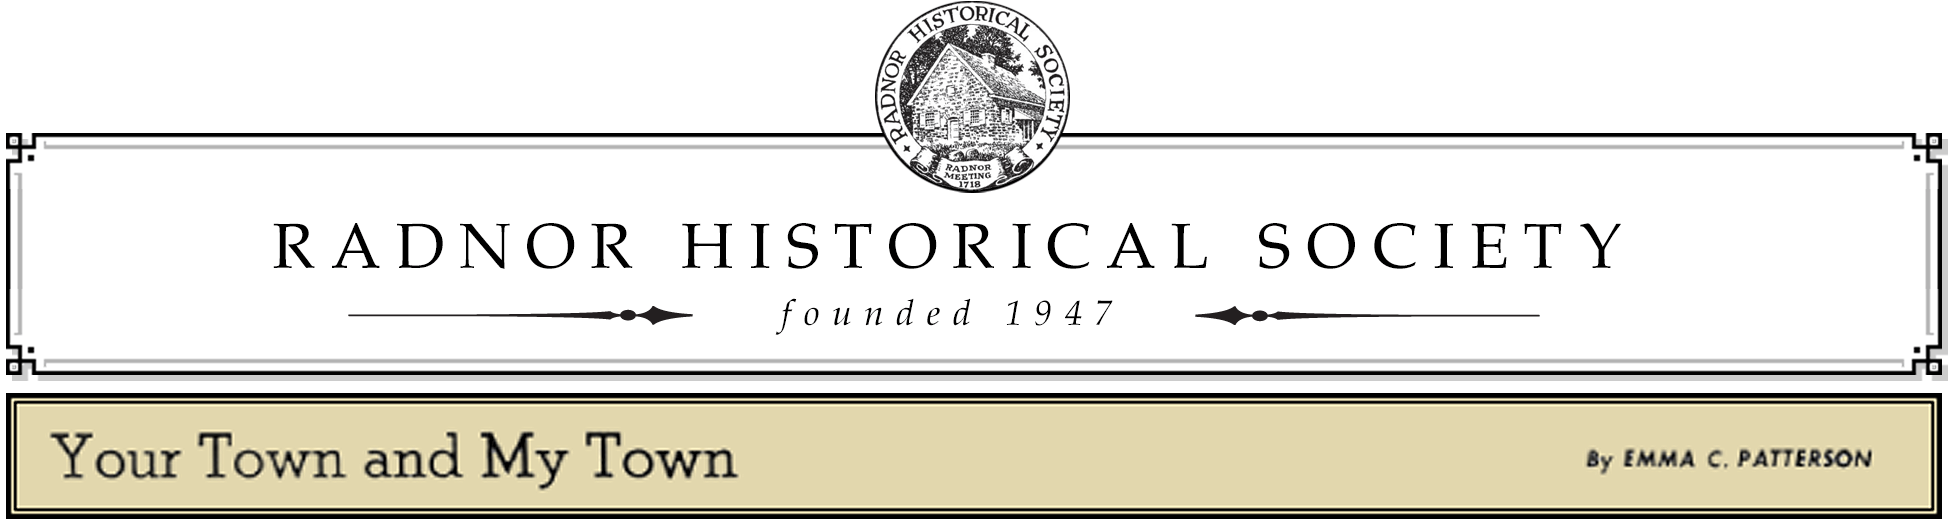 Radnor Historical Society | Your Town and My Town